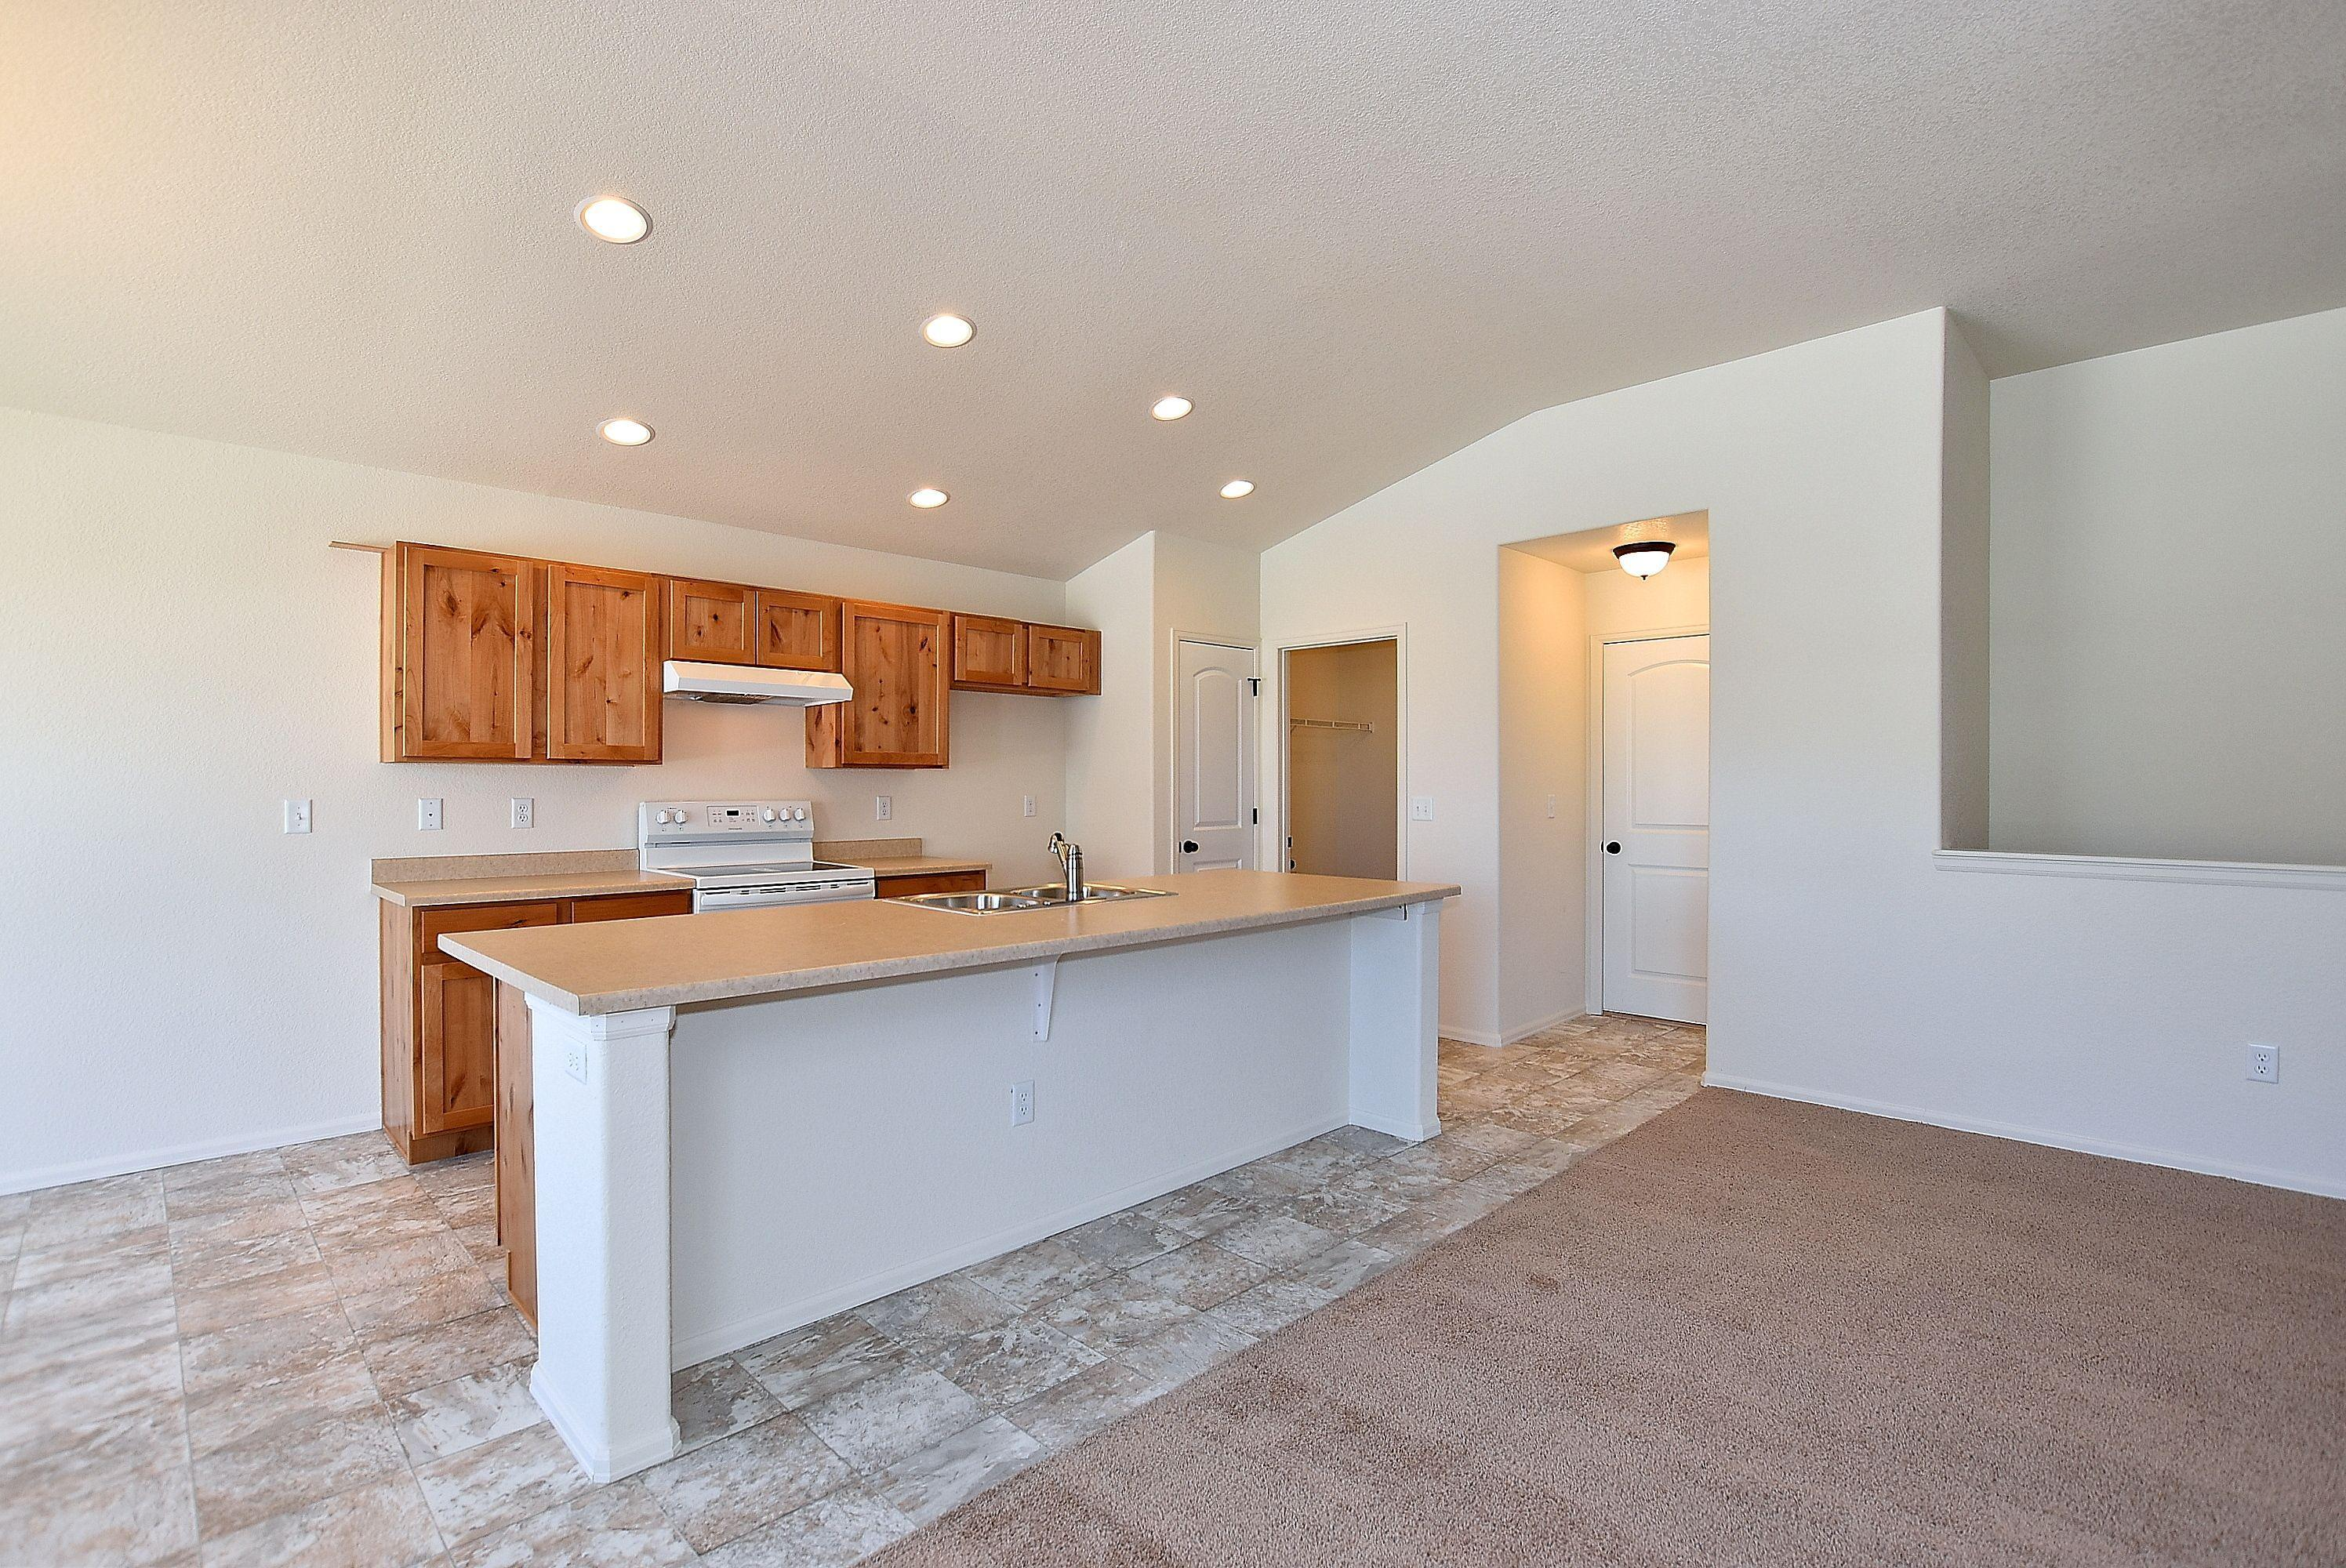 Kitchen featured in the Arizona By Journey Homes in Fort Collins-Loveland, CO